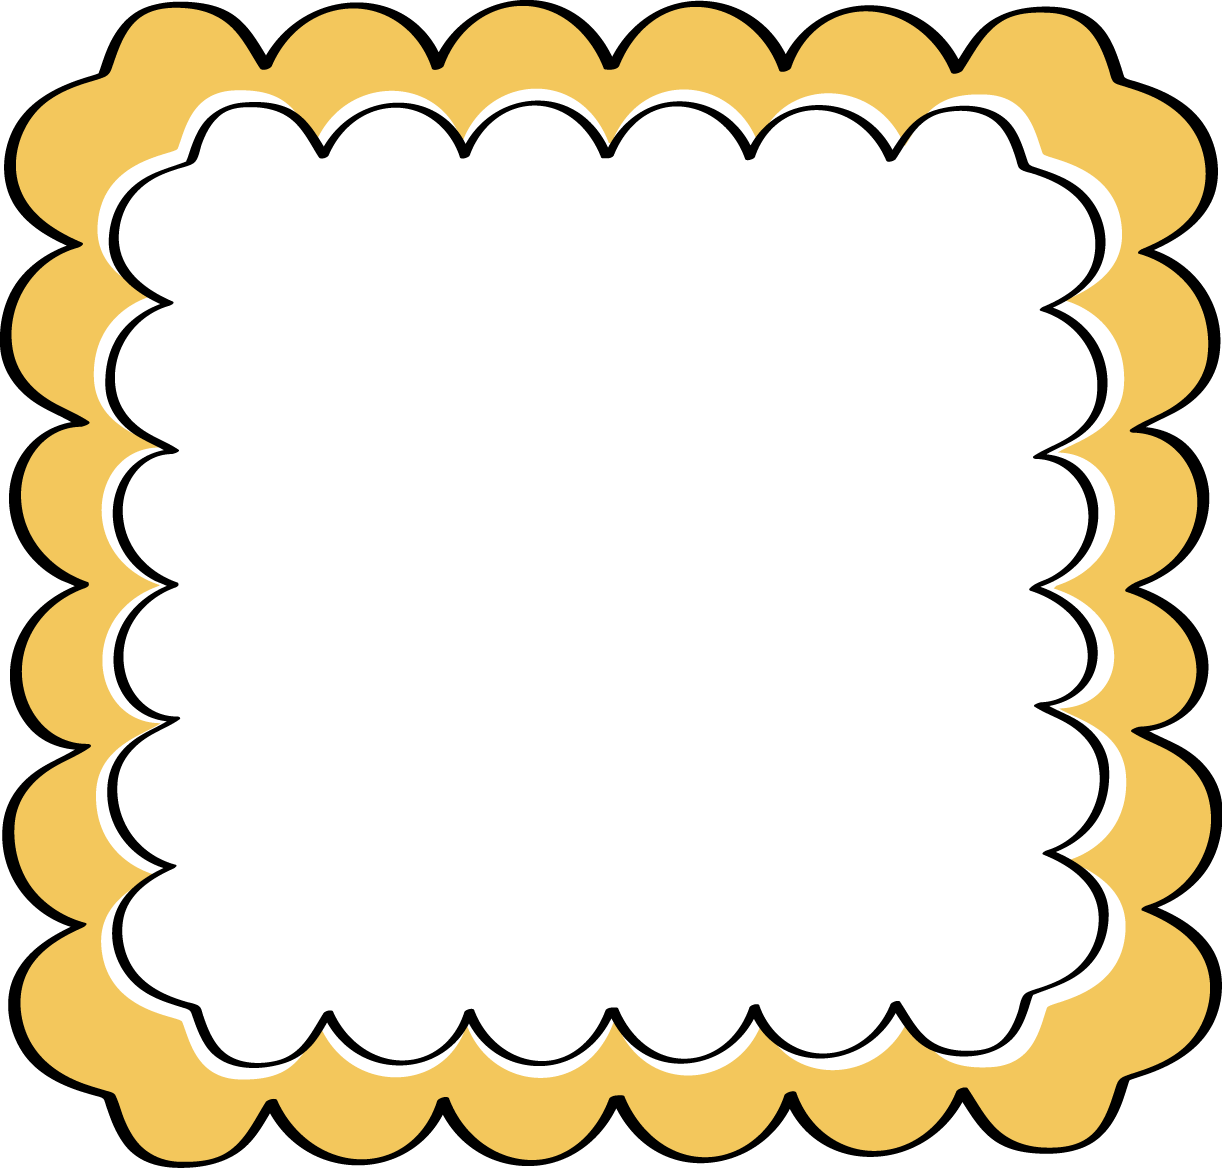 yellow scalloped frame